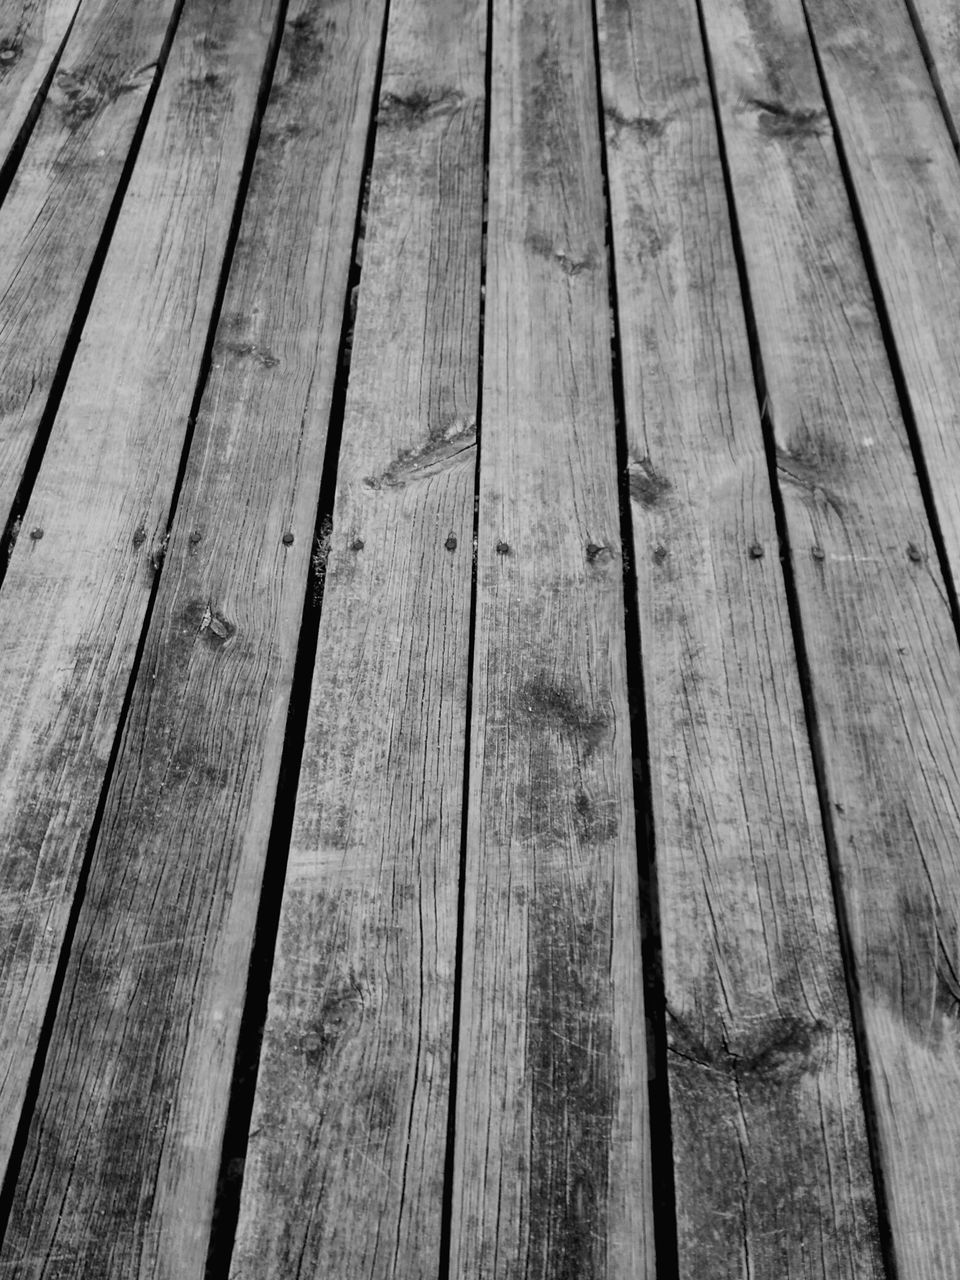 wood - material, backgrounds, wood grain, hardwood, plank, hardwood floor, wood paneling, rough, knotted wood, textured, timber, textured effect, striped, pattern, dirty, no people, deck, close-up, weathered, outdoors, jetty, full frame, nature, day